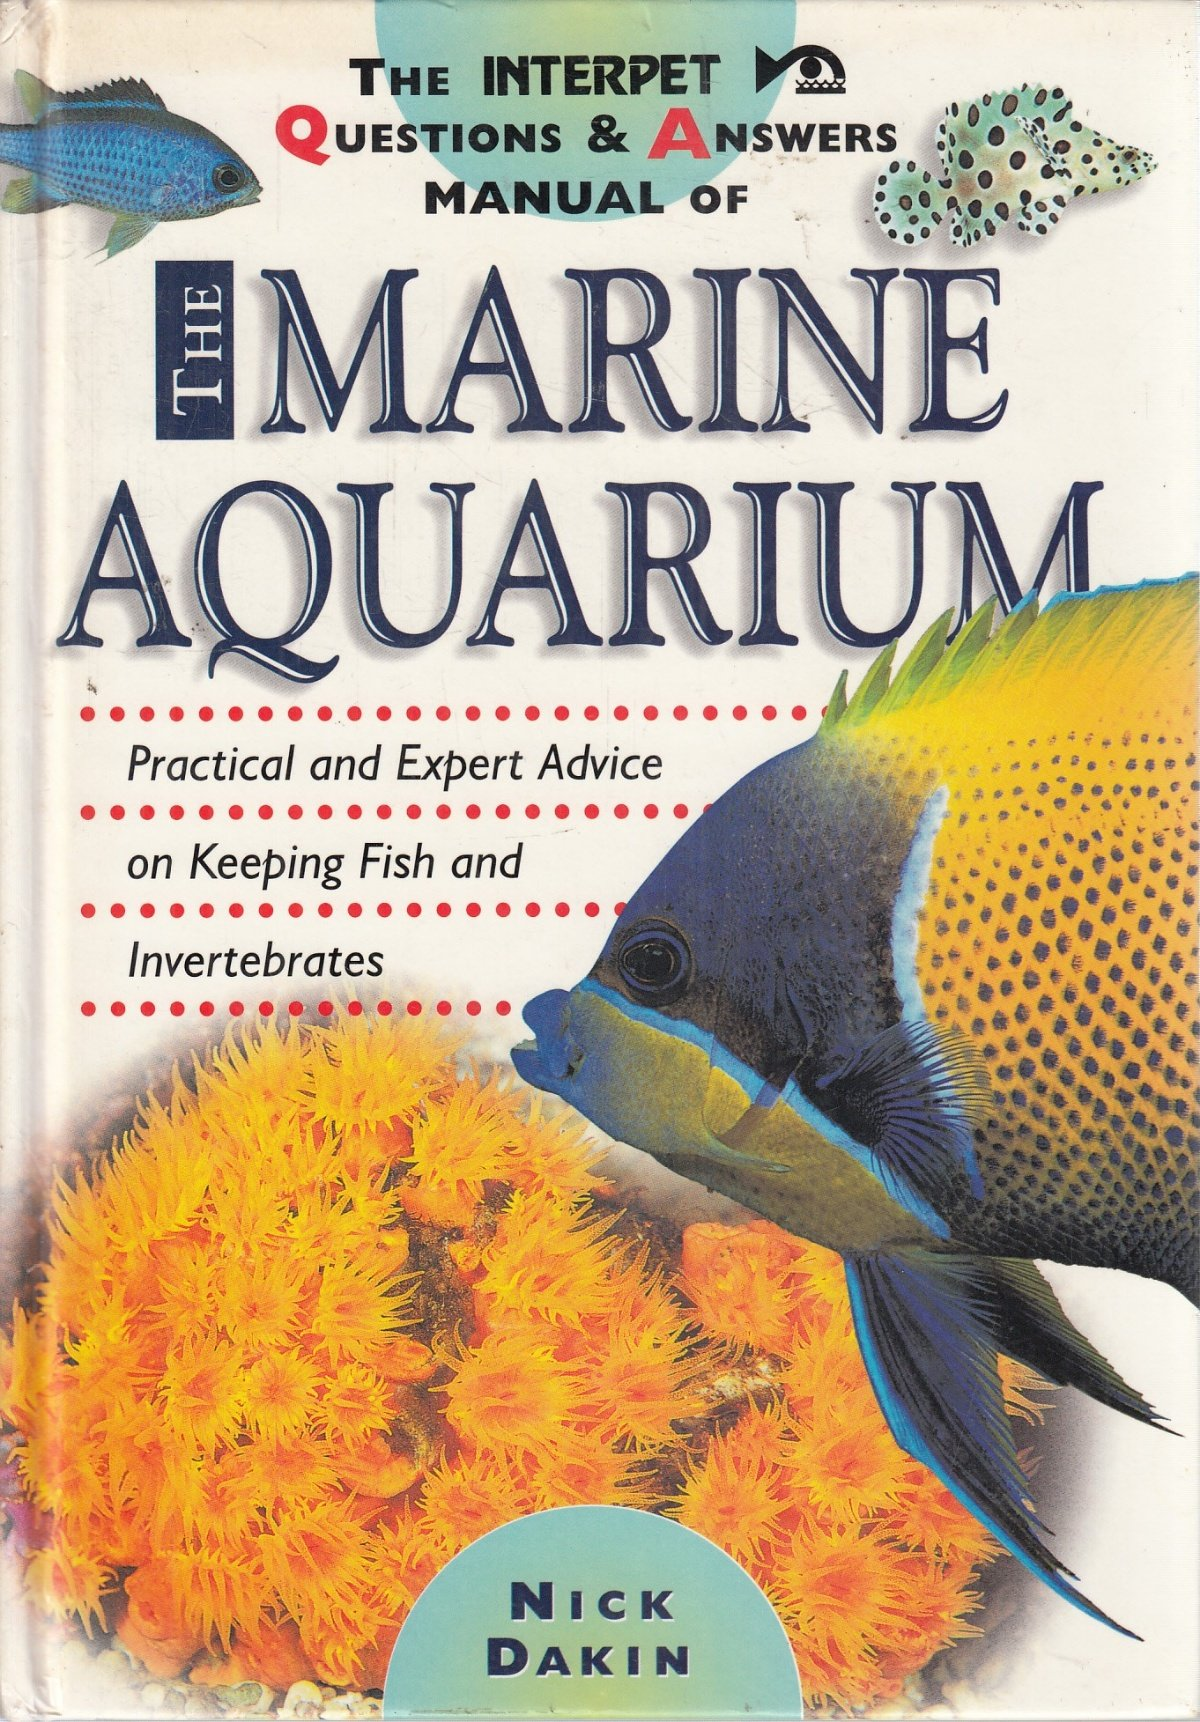 THE INTERPET QUESTIONS AND ANSWERS MANUAL OF THE MARINE AQUARIUM.